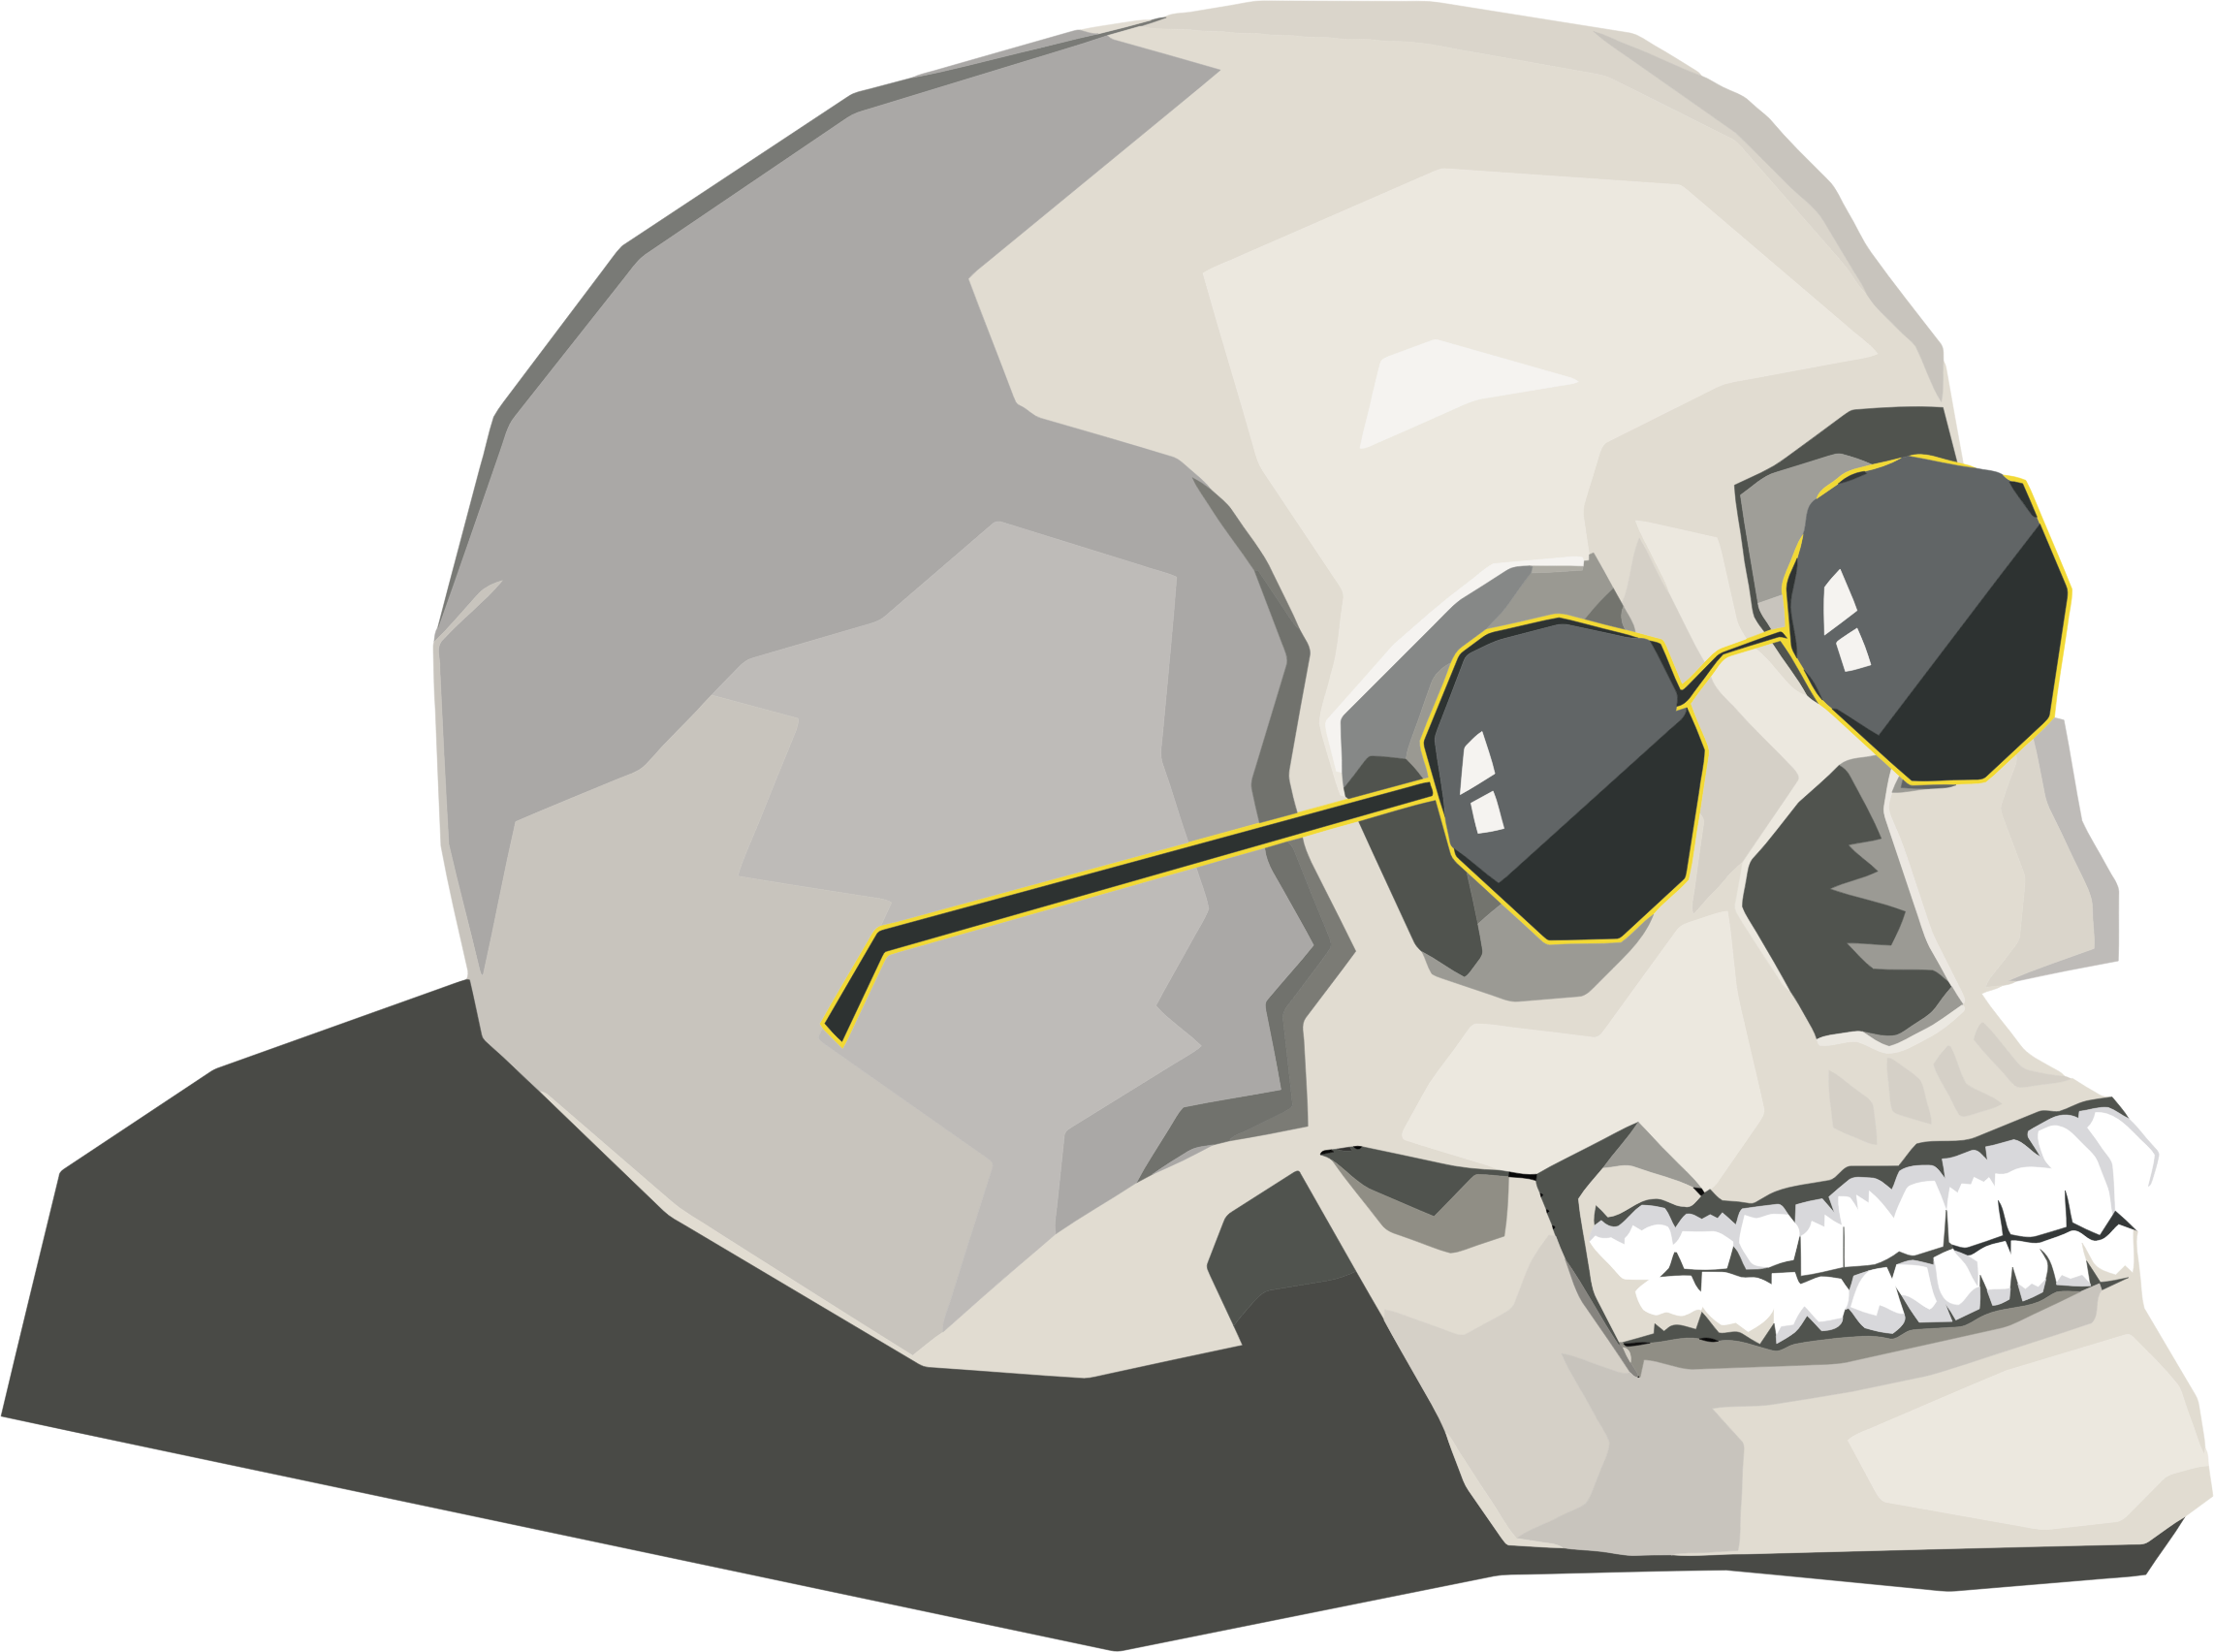 Skull Wearing Sunglasses by GDJ